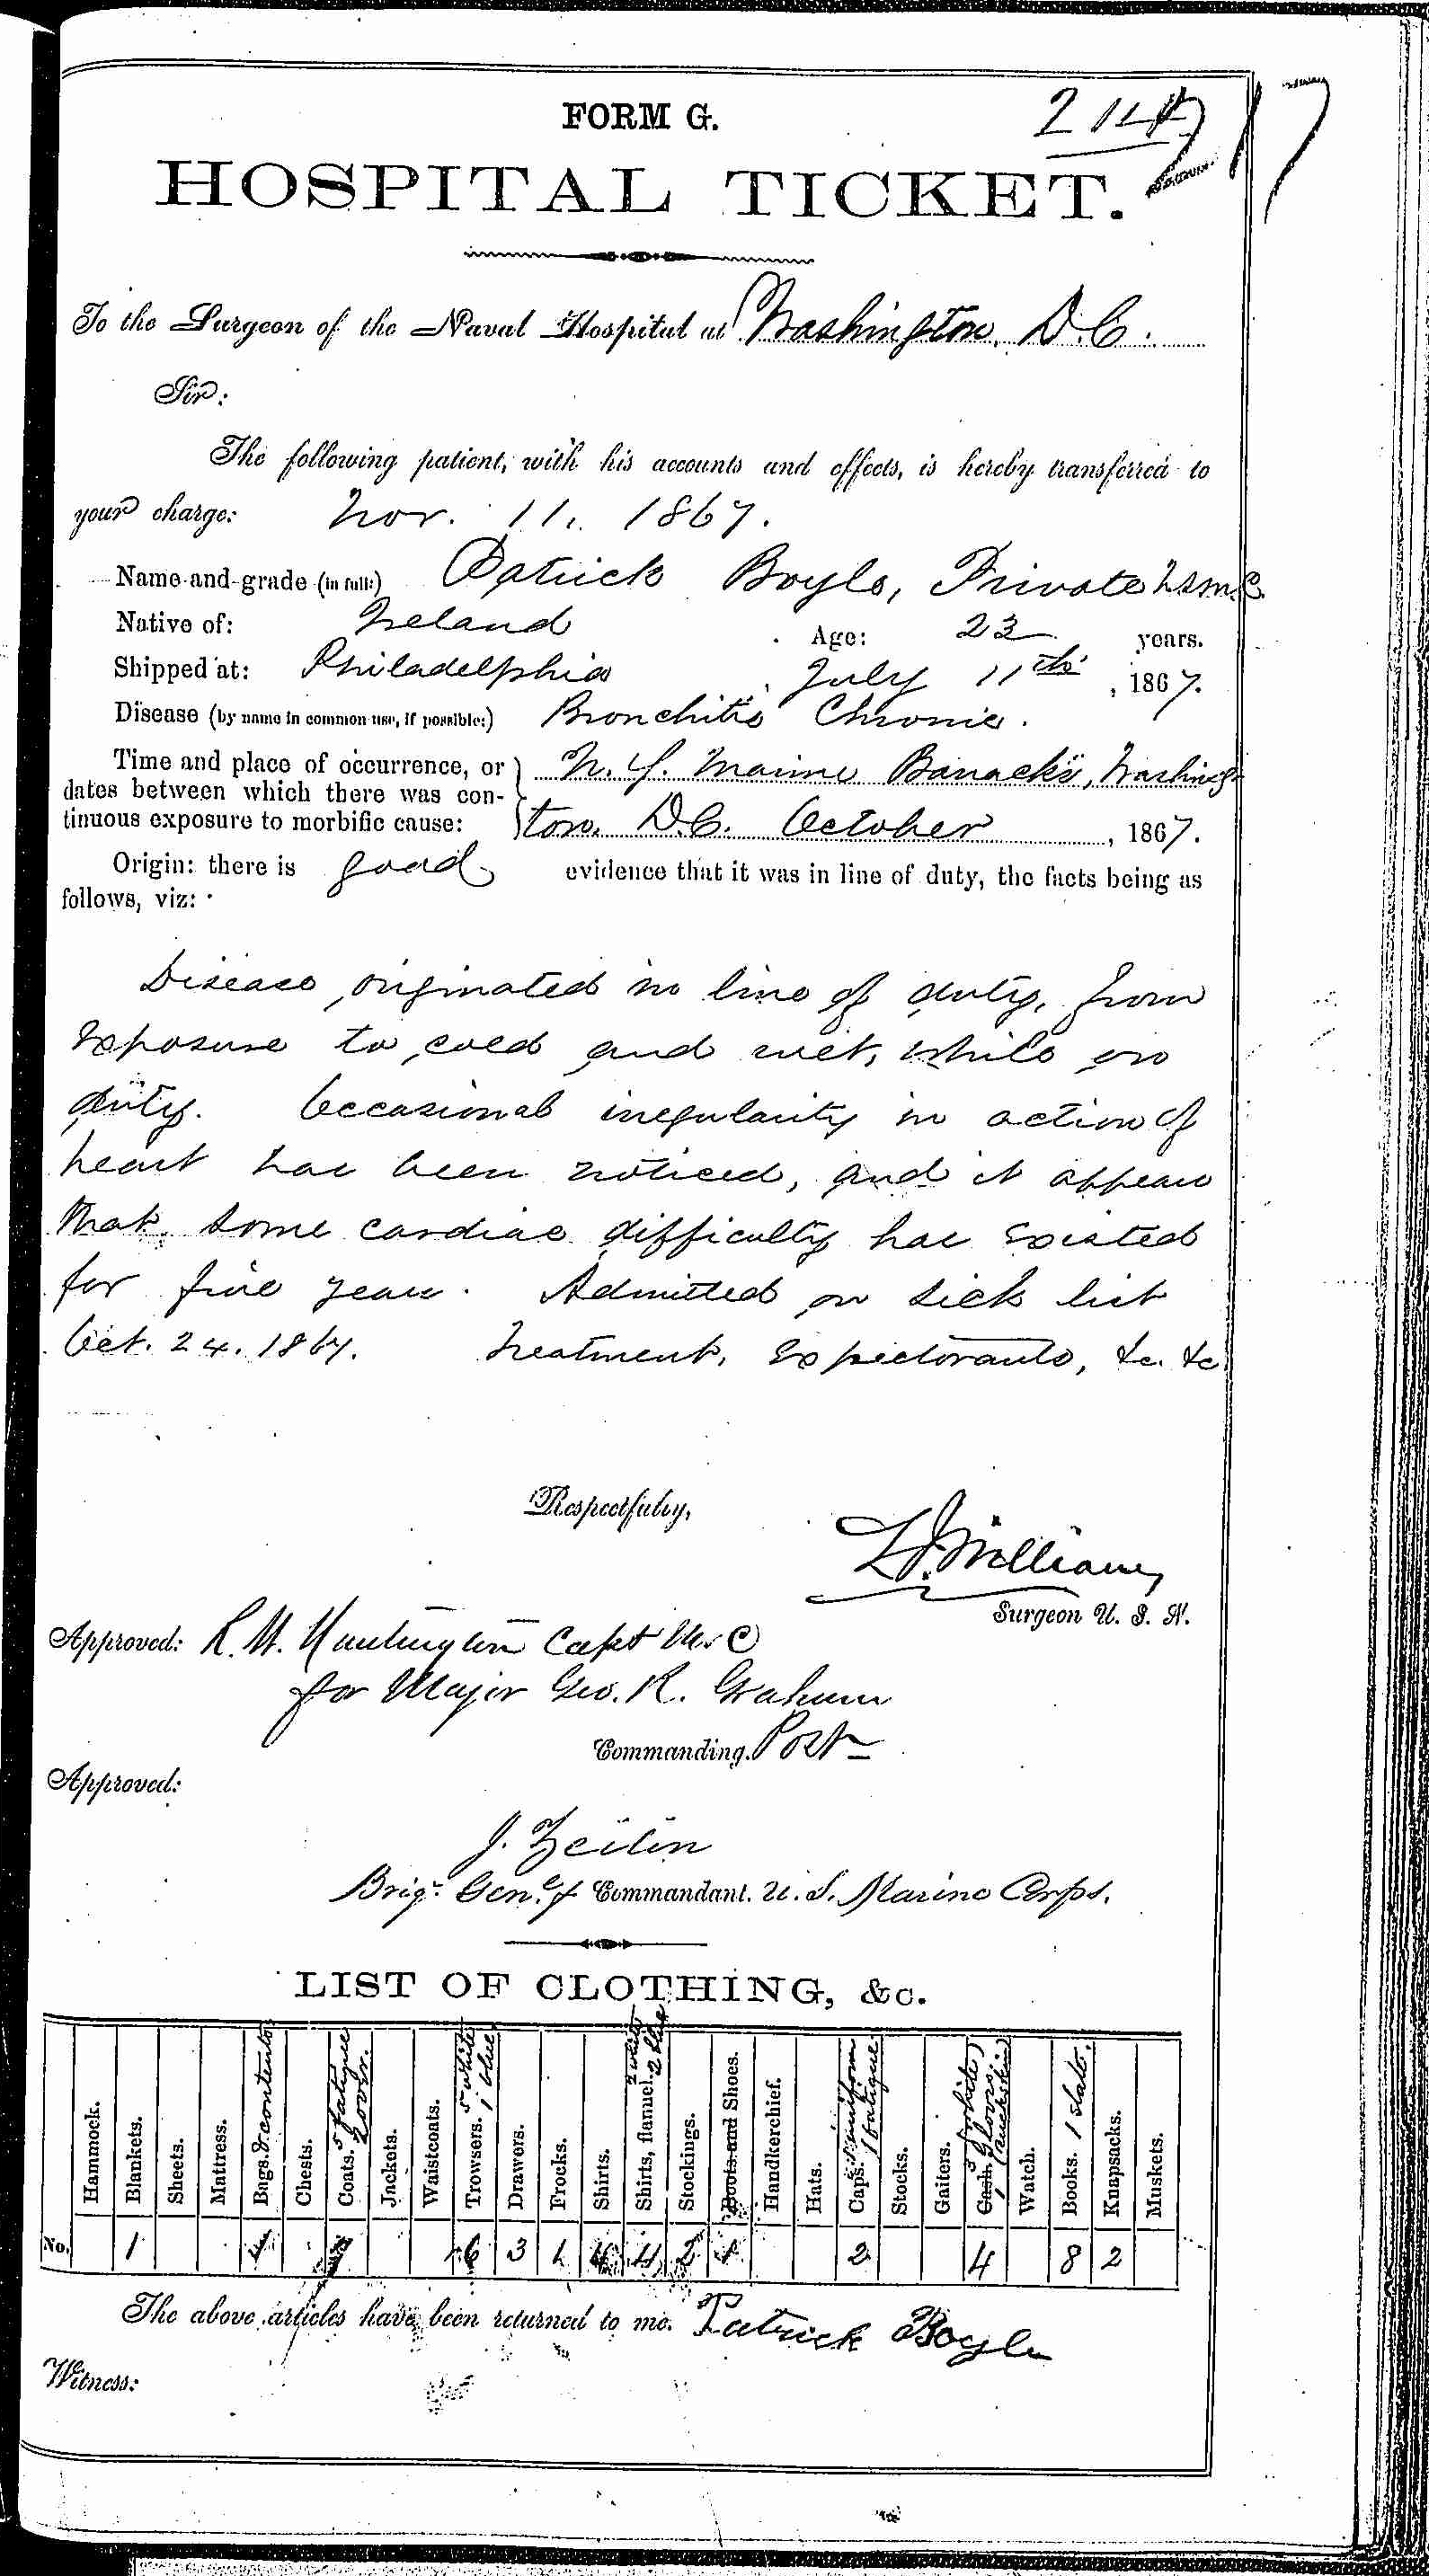 Entry for Patrick Boyle (page 1 of 2) in the log Hospital Tickets and Case Papers - Naval Hospital - Washington, D.C. - 1866-68